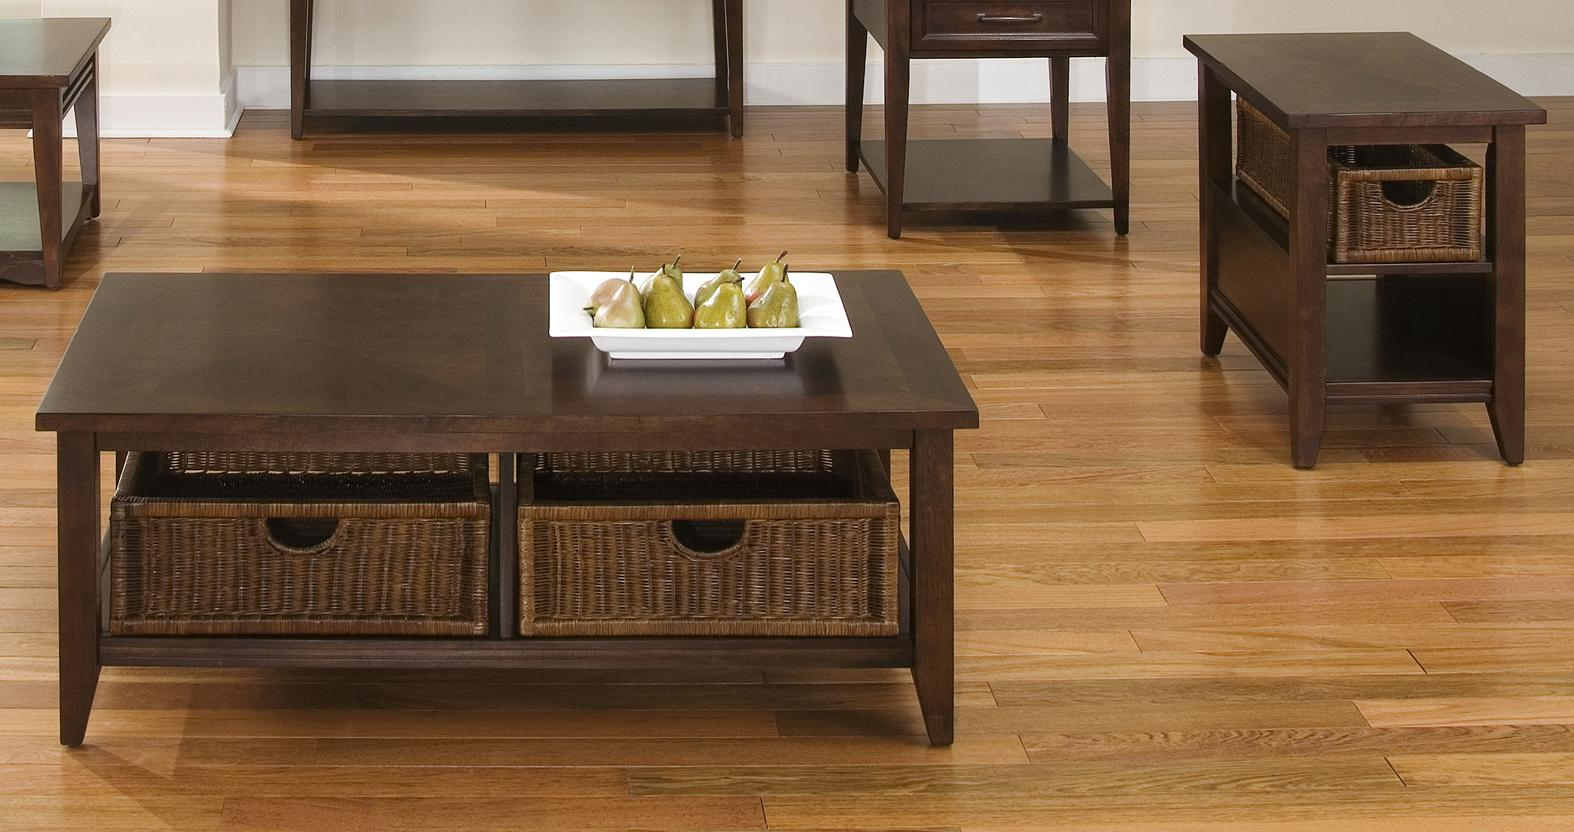 End Tables And Coffee Tables Setproducts Liberty Furniture Color Lakewood Lakewood Basket Coffee Table And End & 9 Best Ideas of End Tables And Coffee Tables Sets